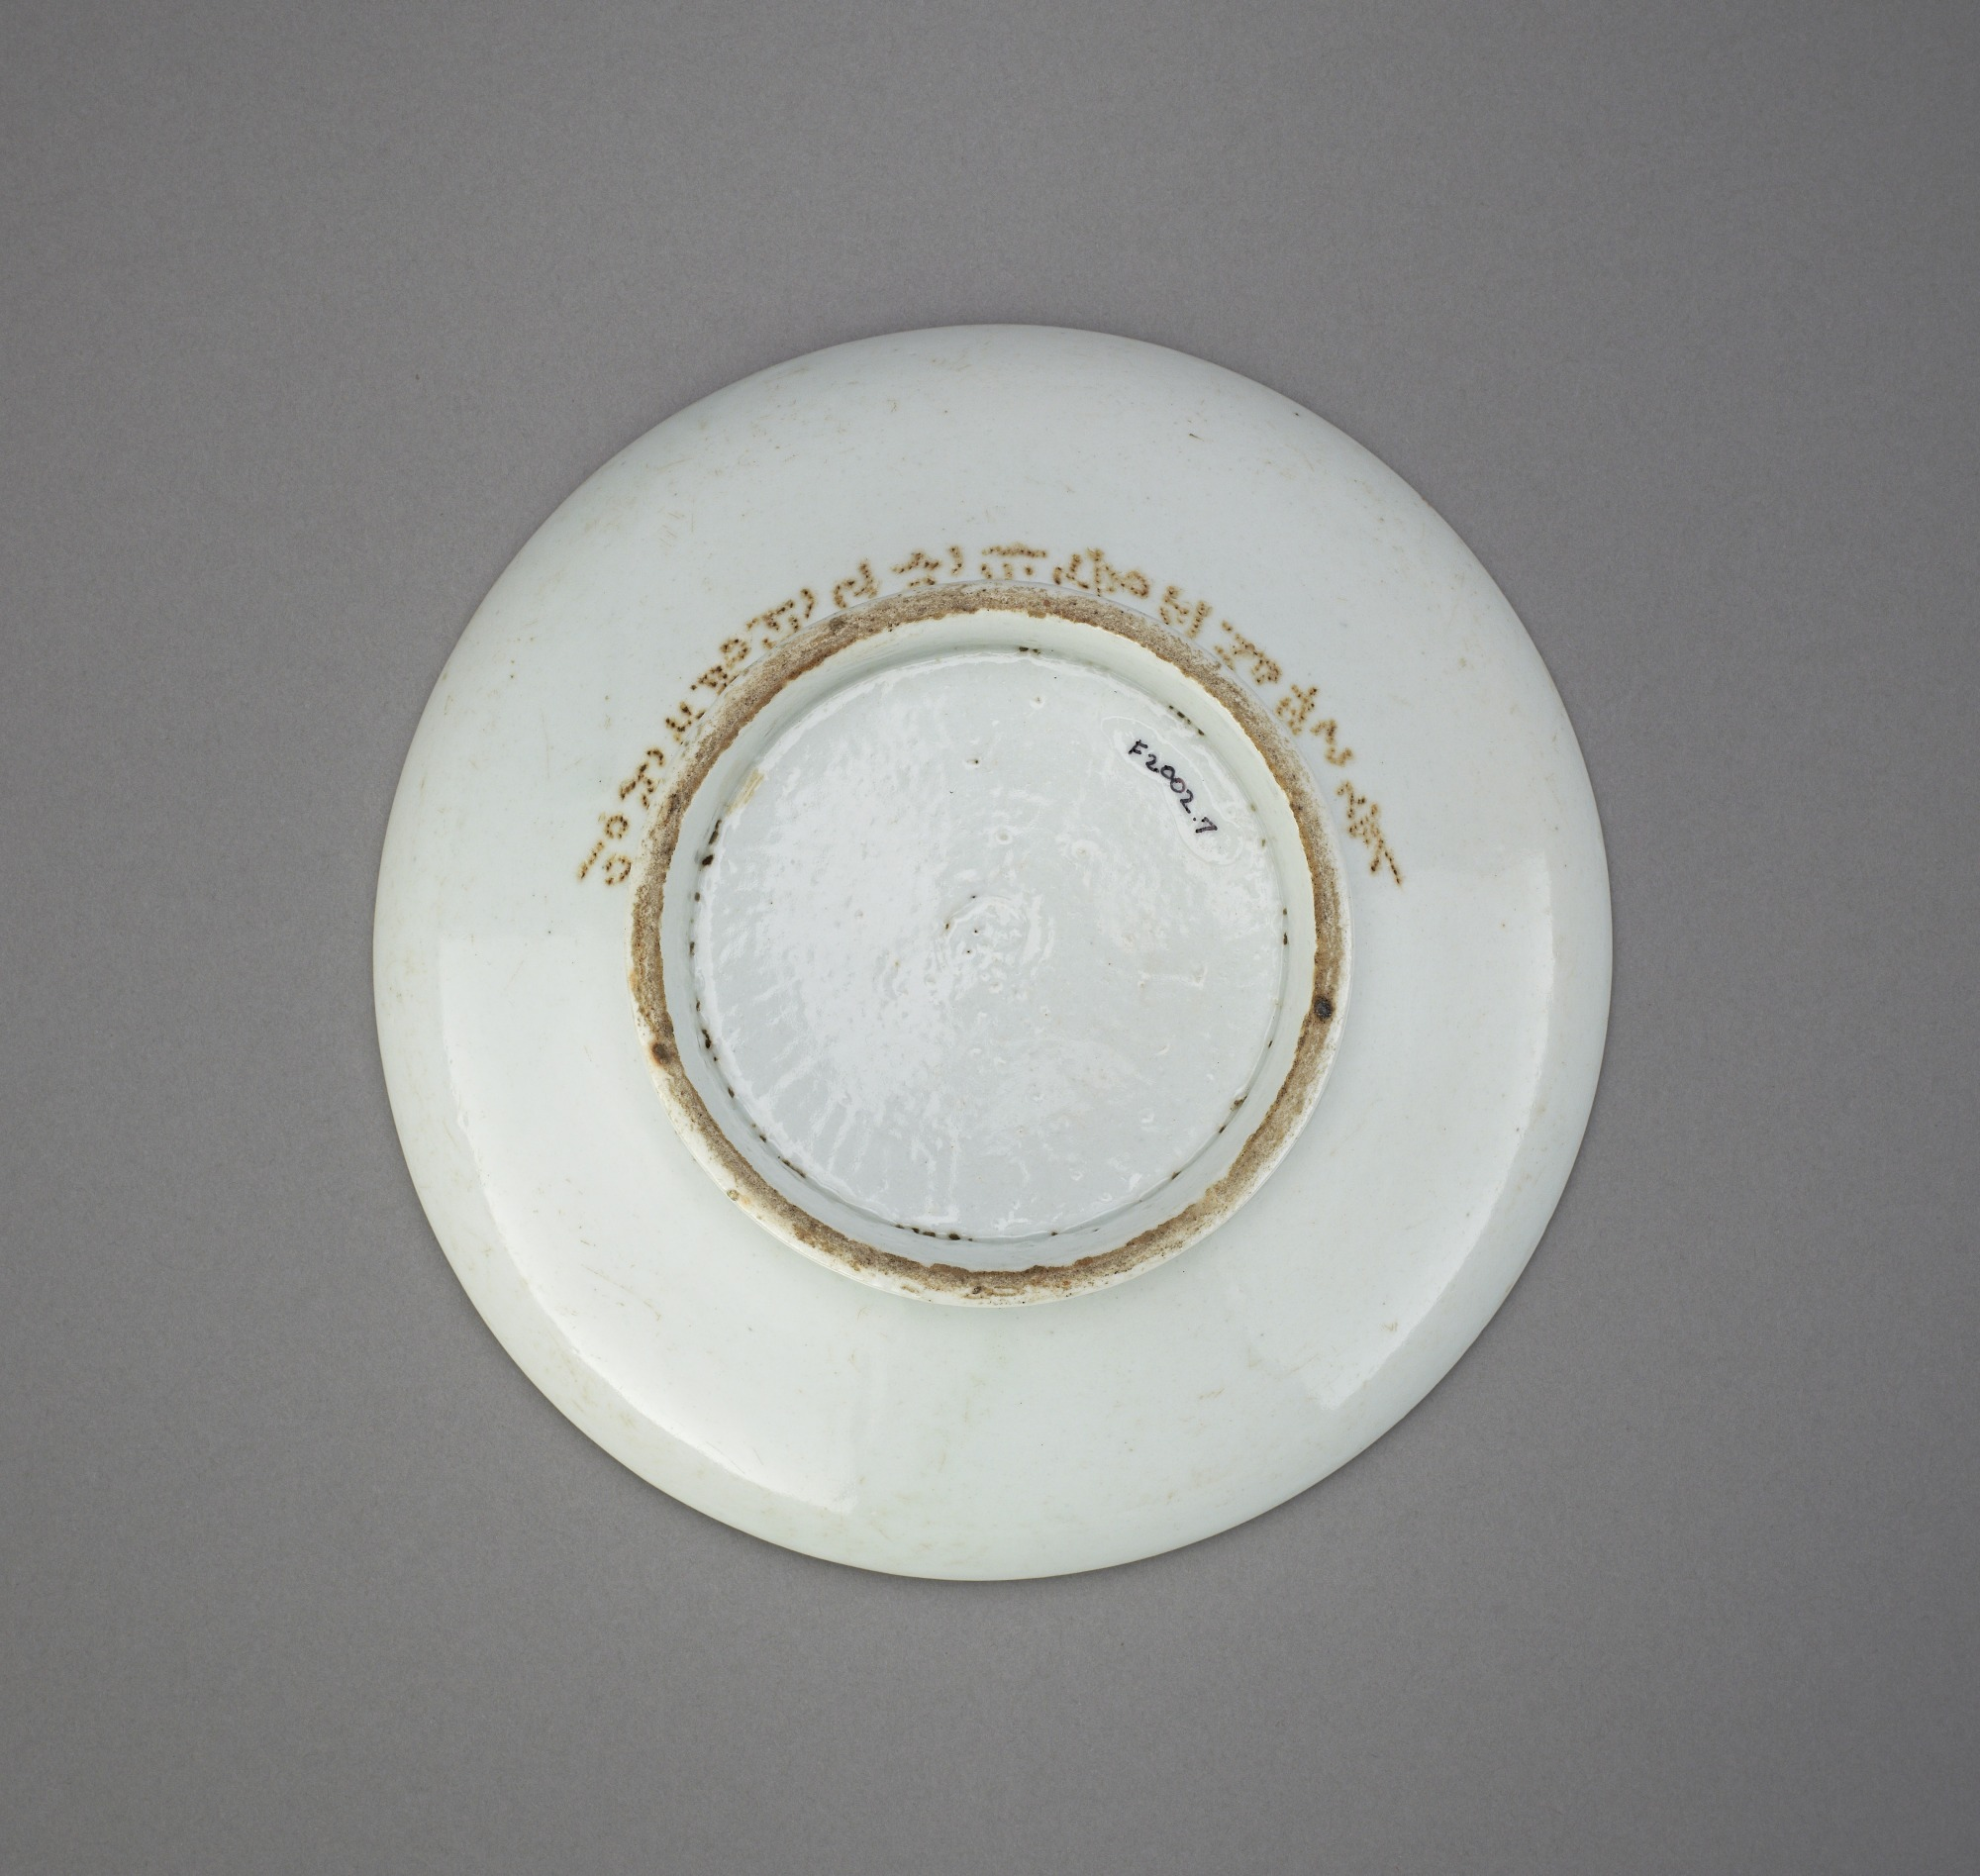 base: Dish with inventory inscription dated 1832